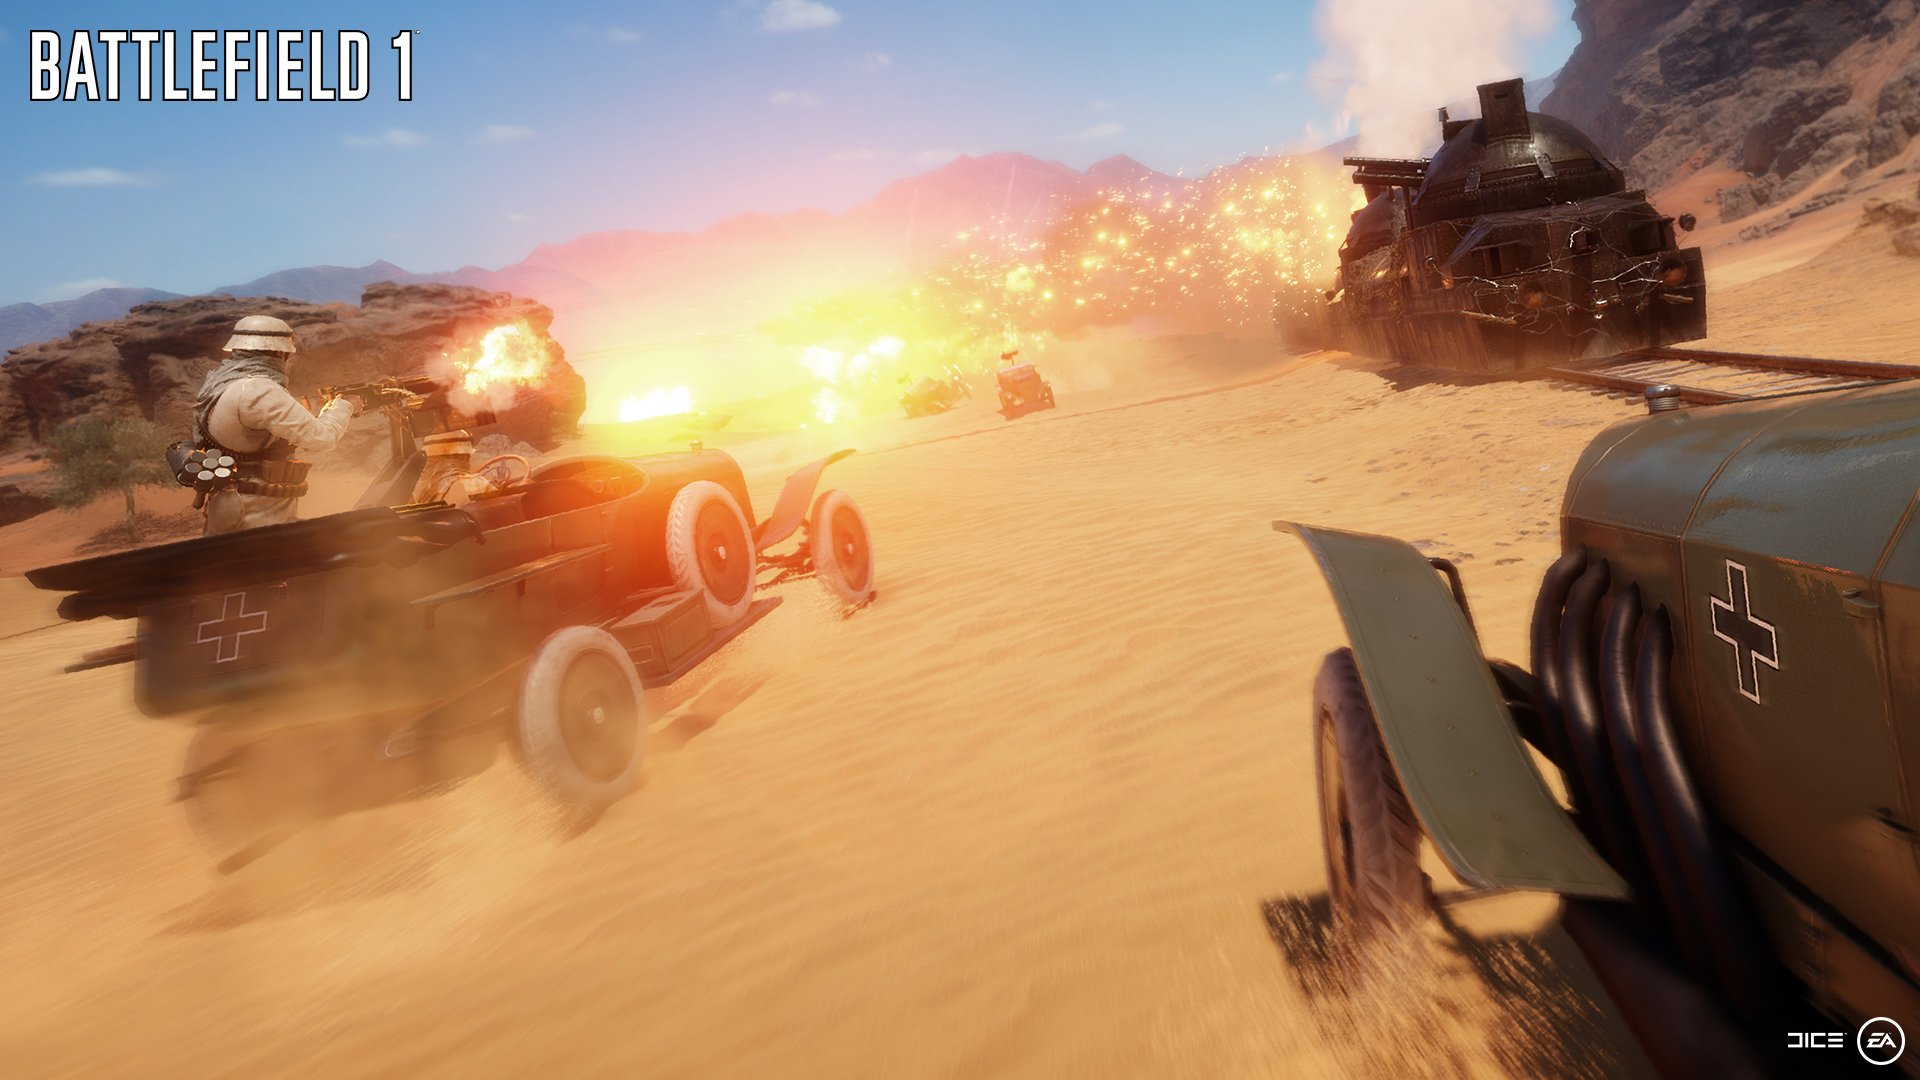 Battlefield Insiders Get Access To The Battlefield 1 Beta One Day Early VG247